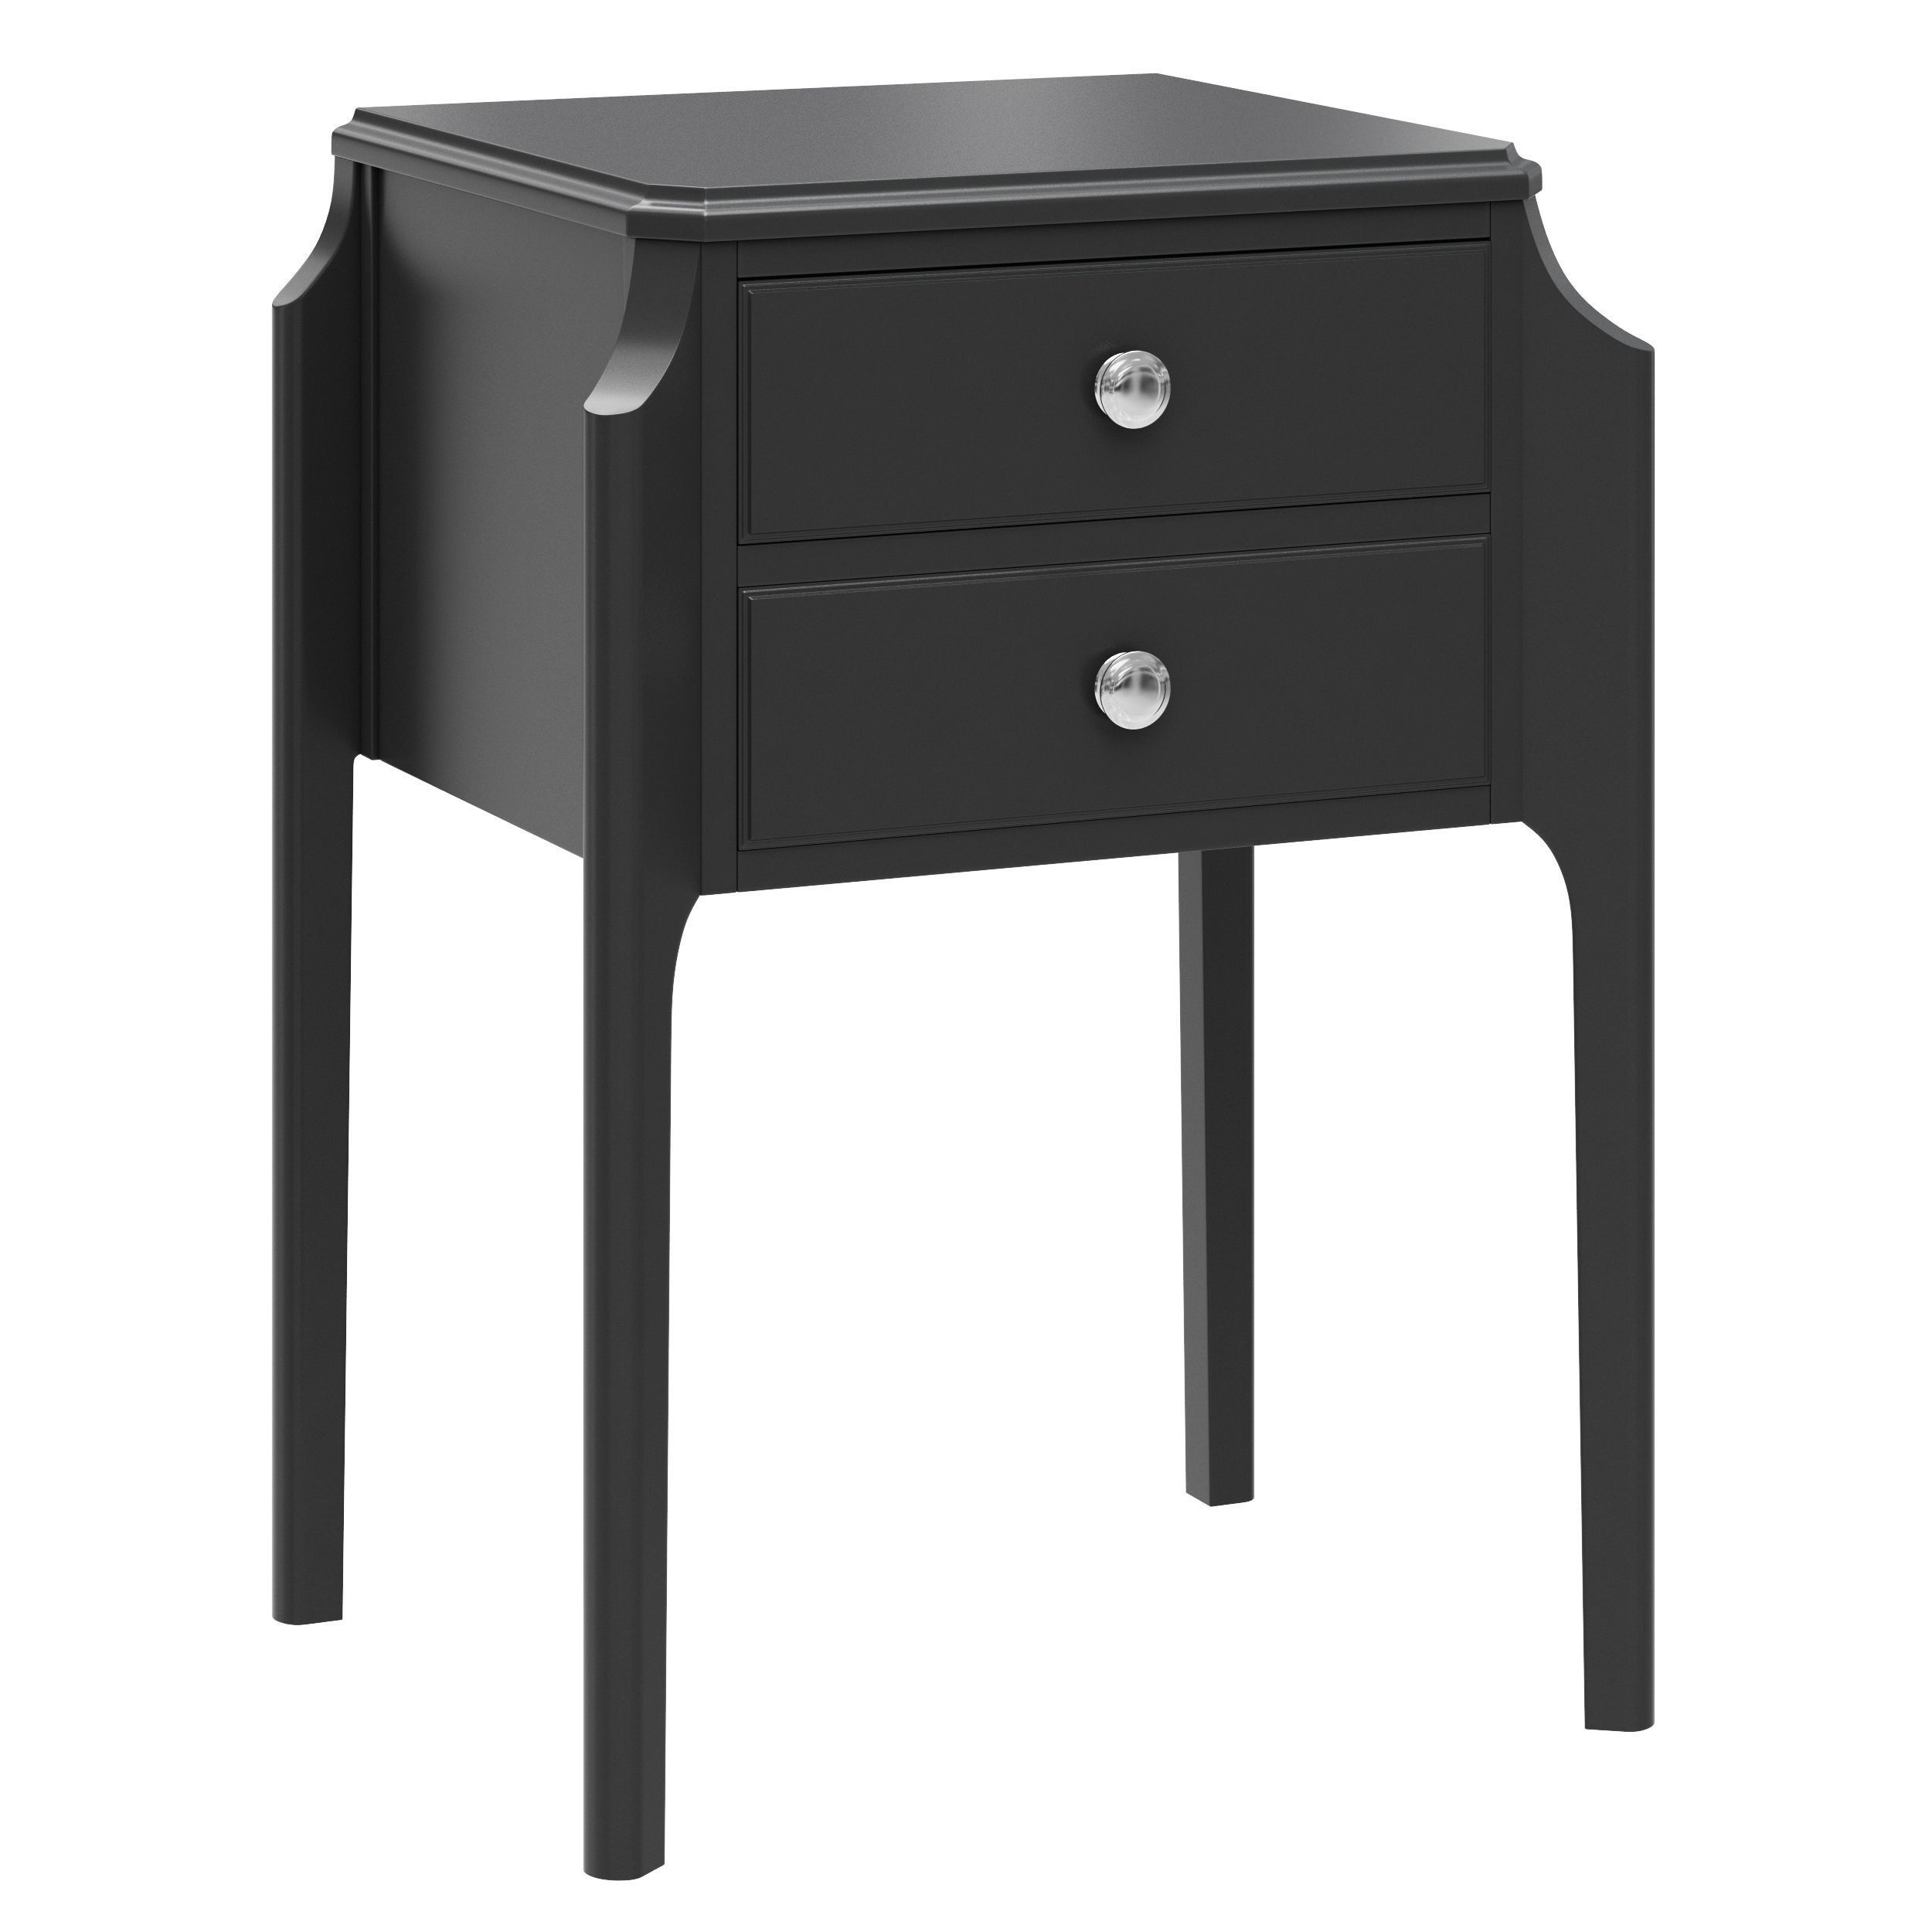 Dantone Home bedside table Le Vizazh